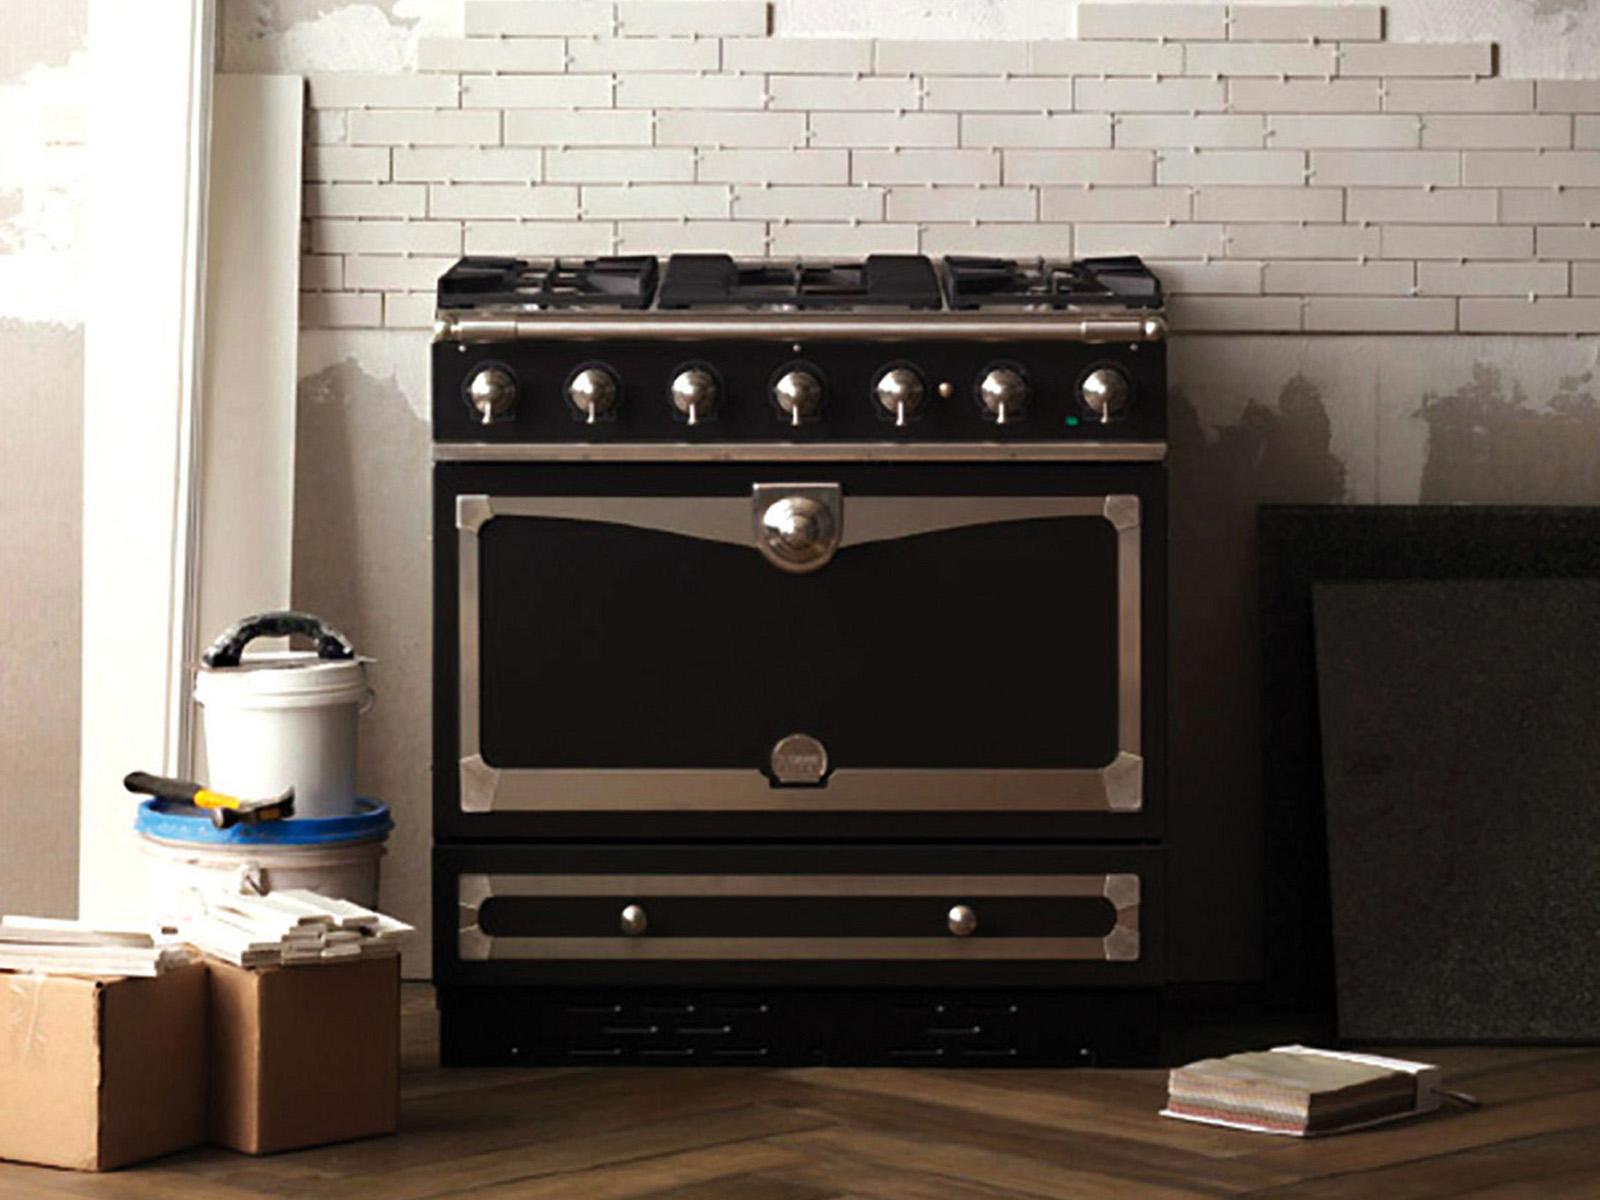 stainless steel cooker albertine by la cornue. Black Bedroom Furniture Sets. Home Design Ideas